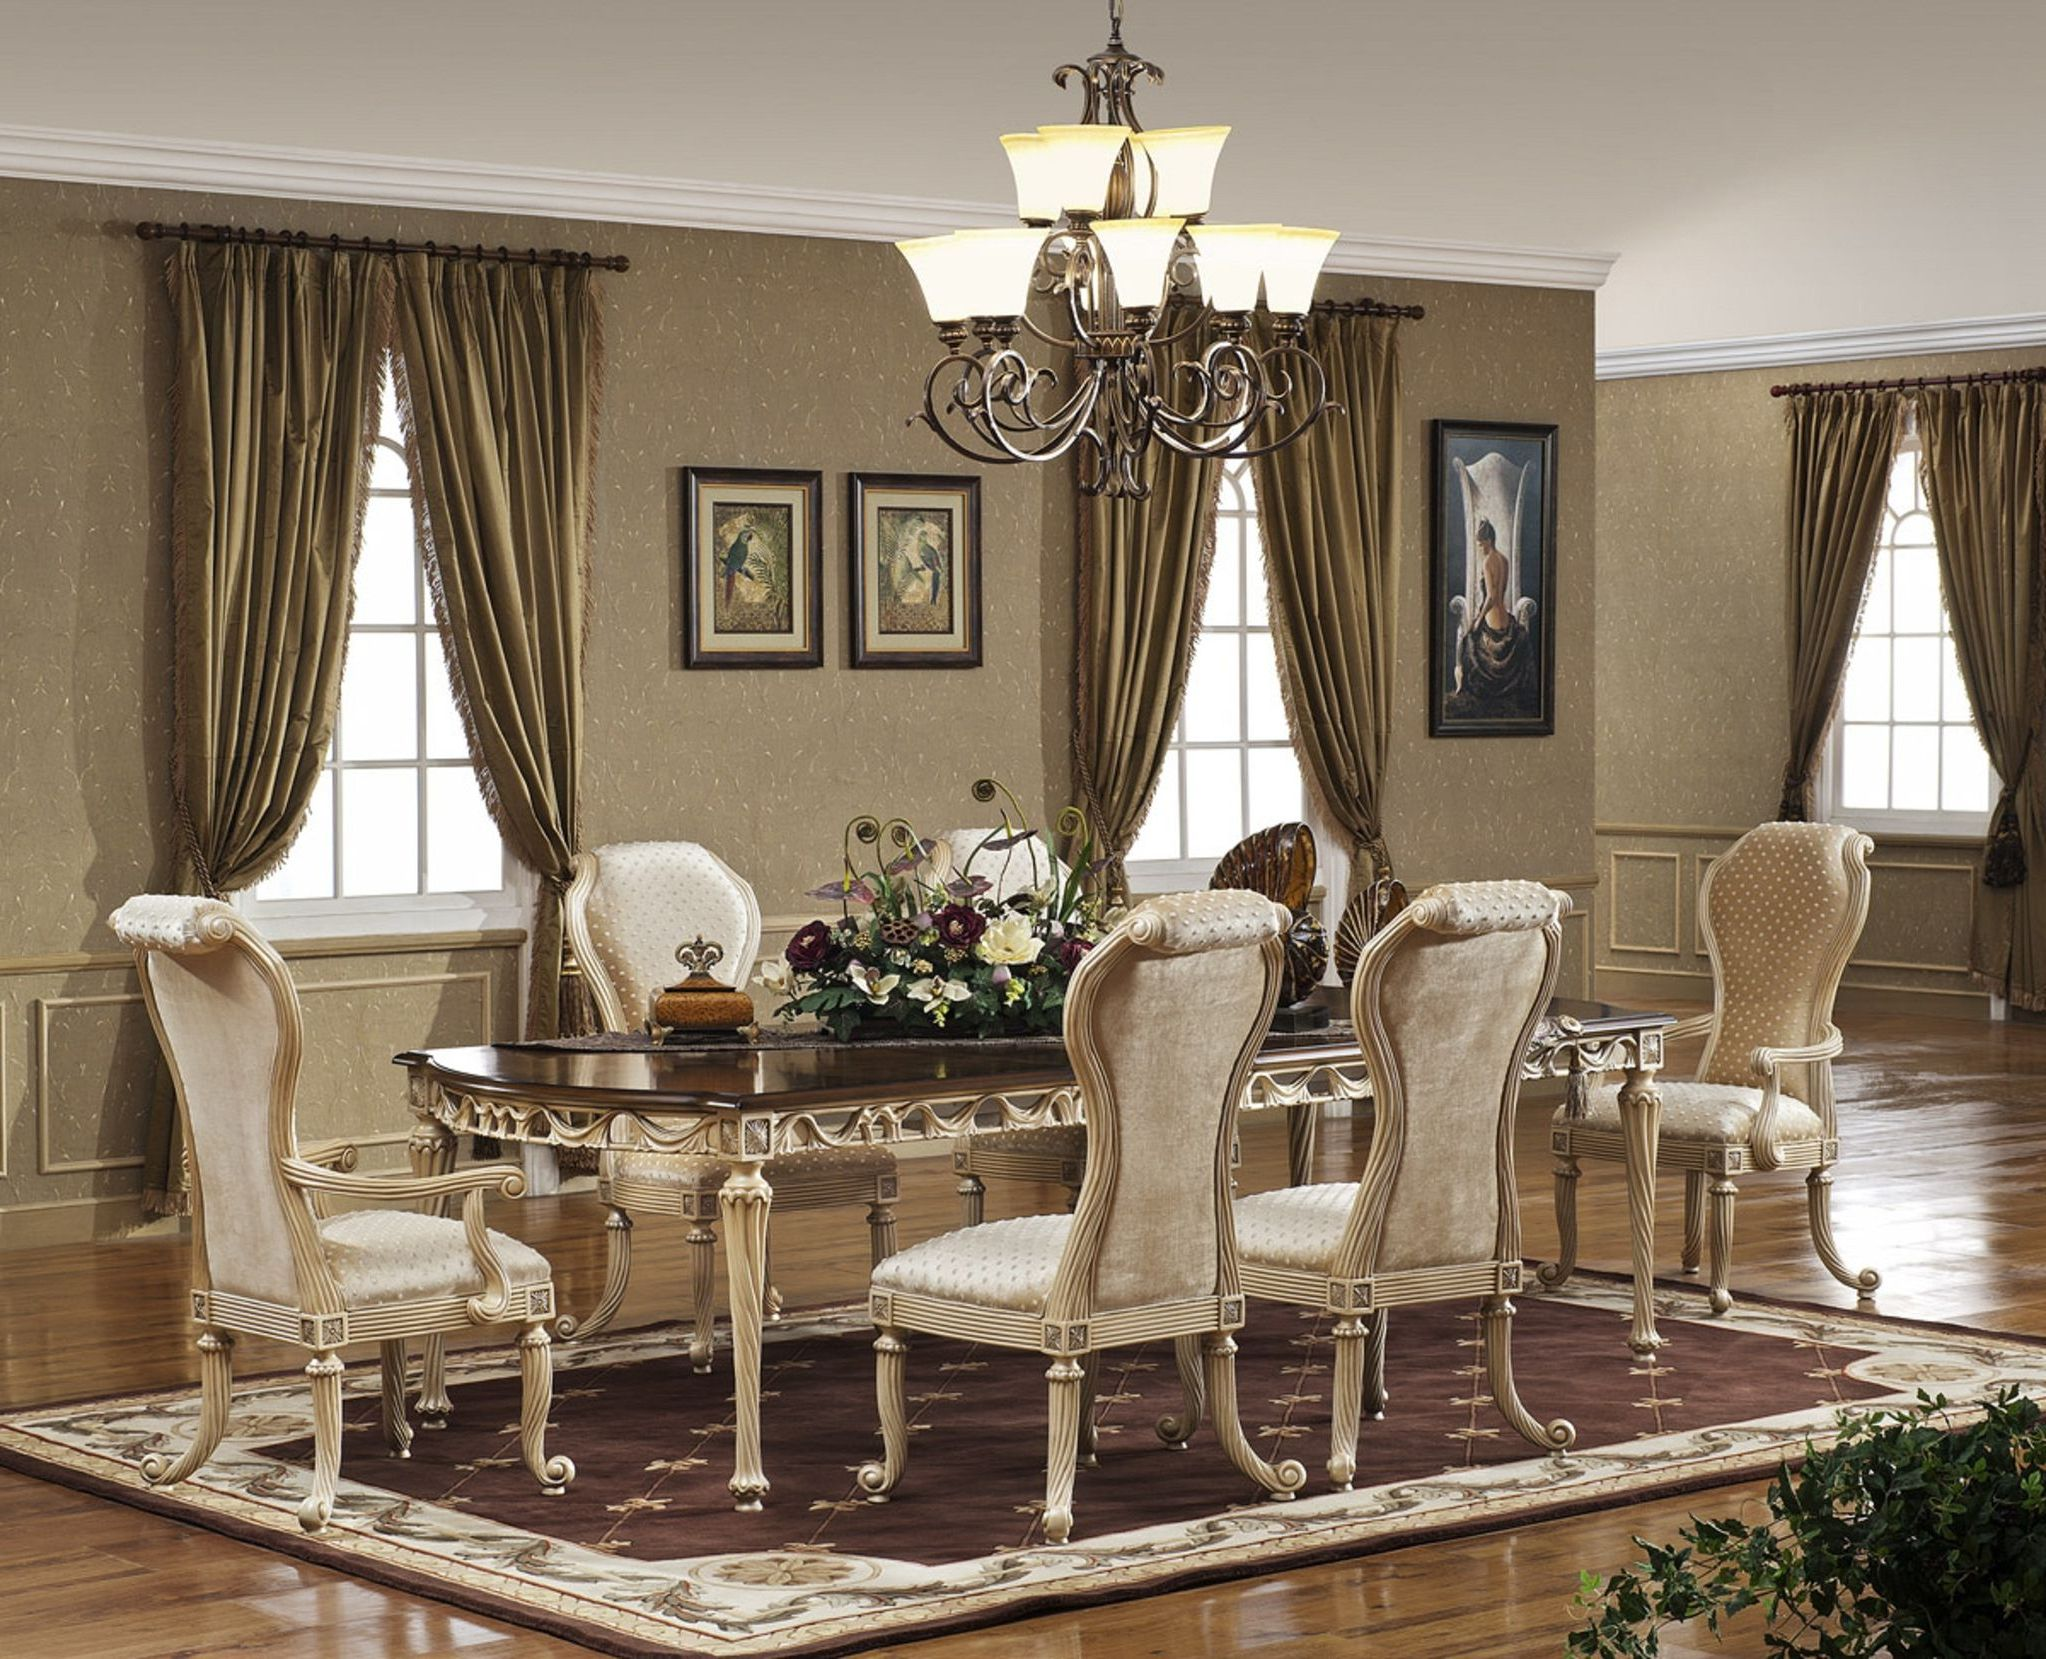 Dining room table and chairs ideas with images for Big dining room ideas